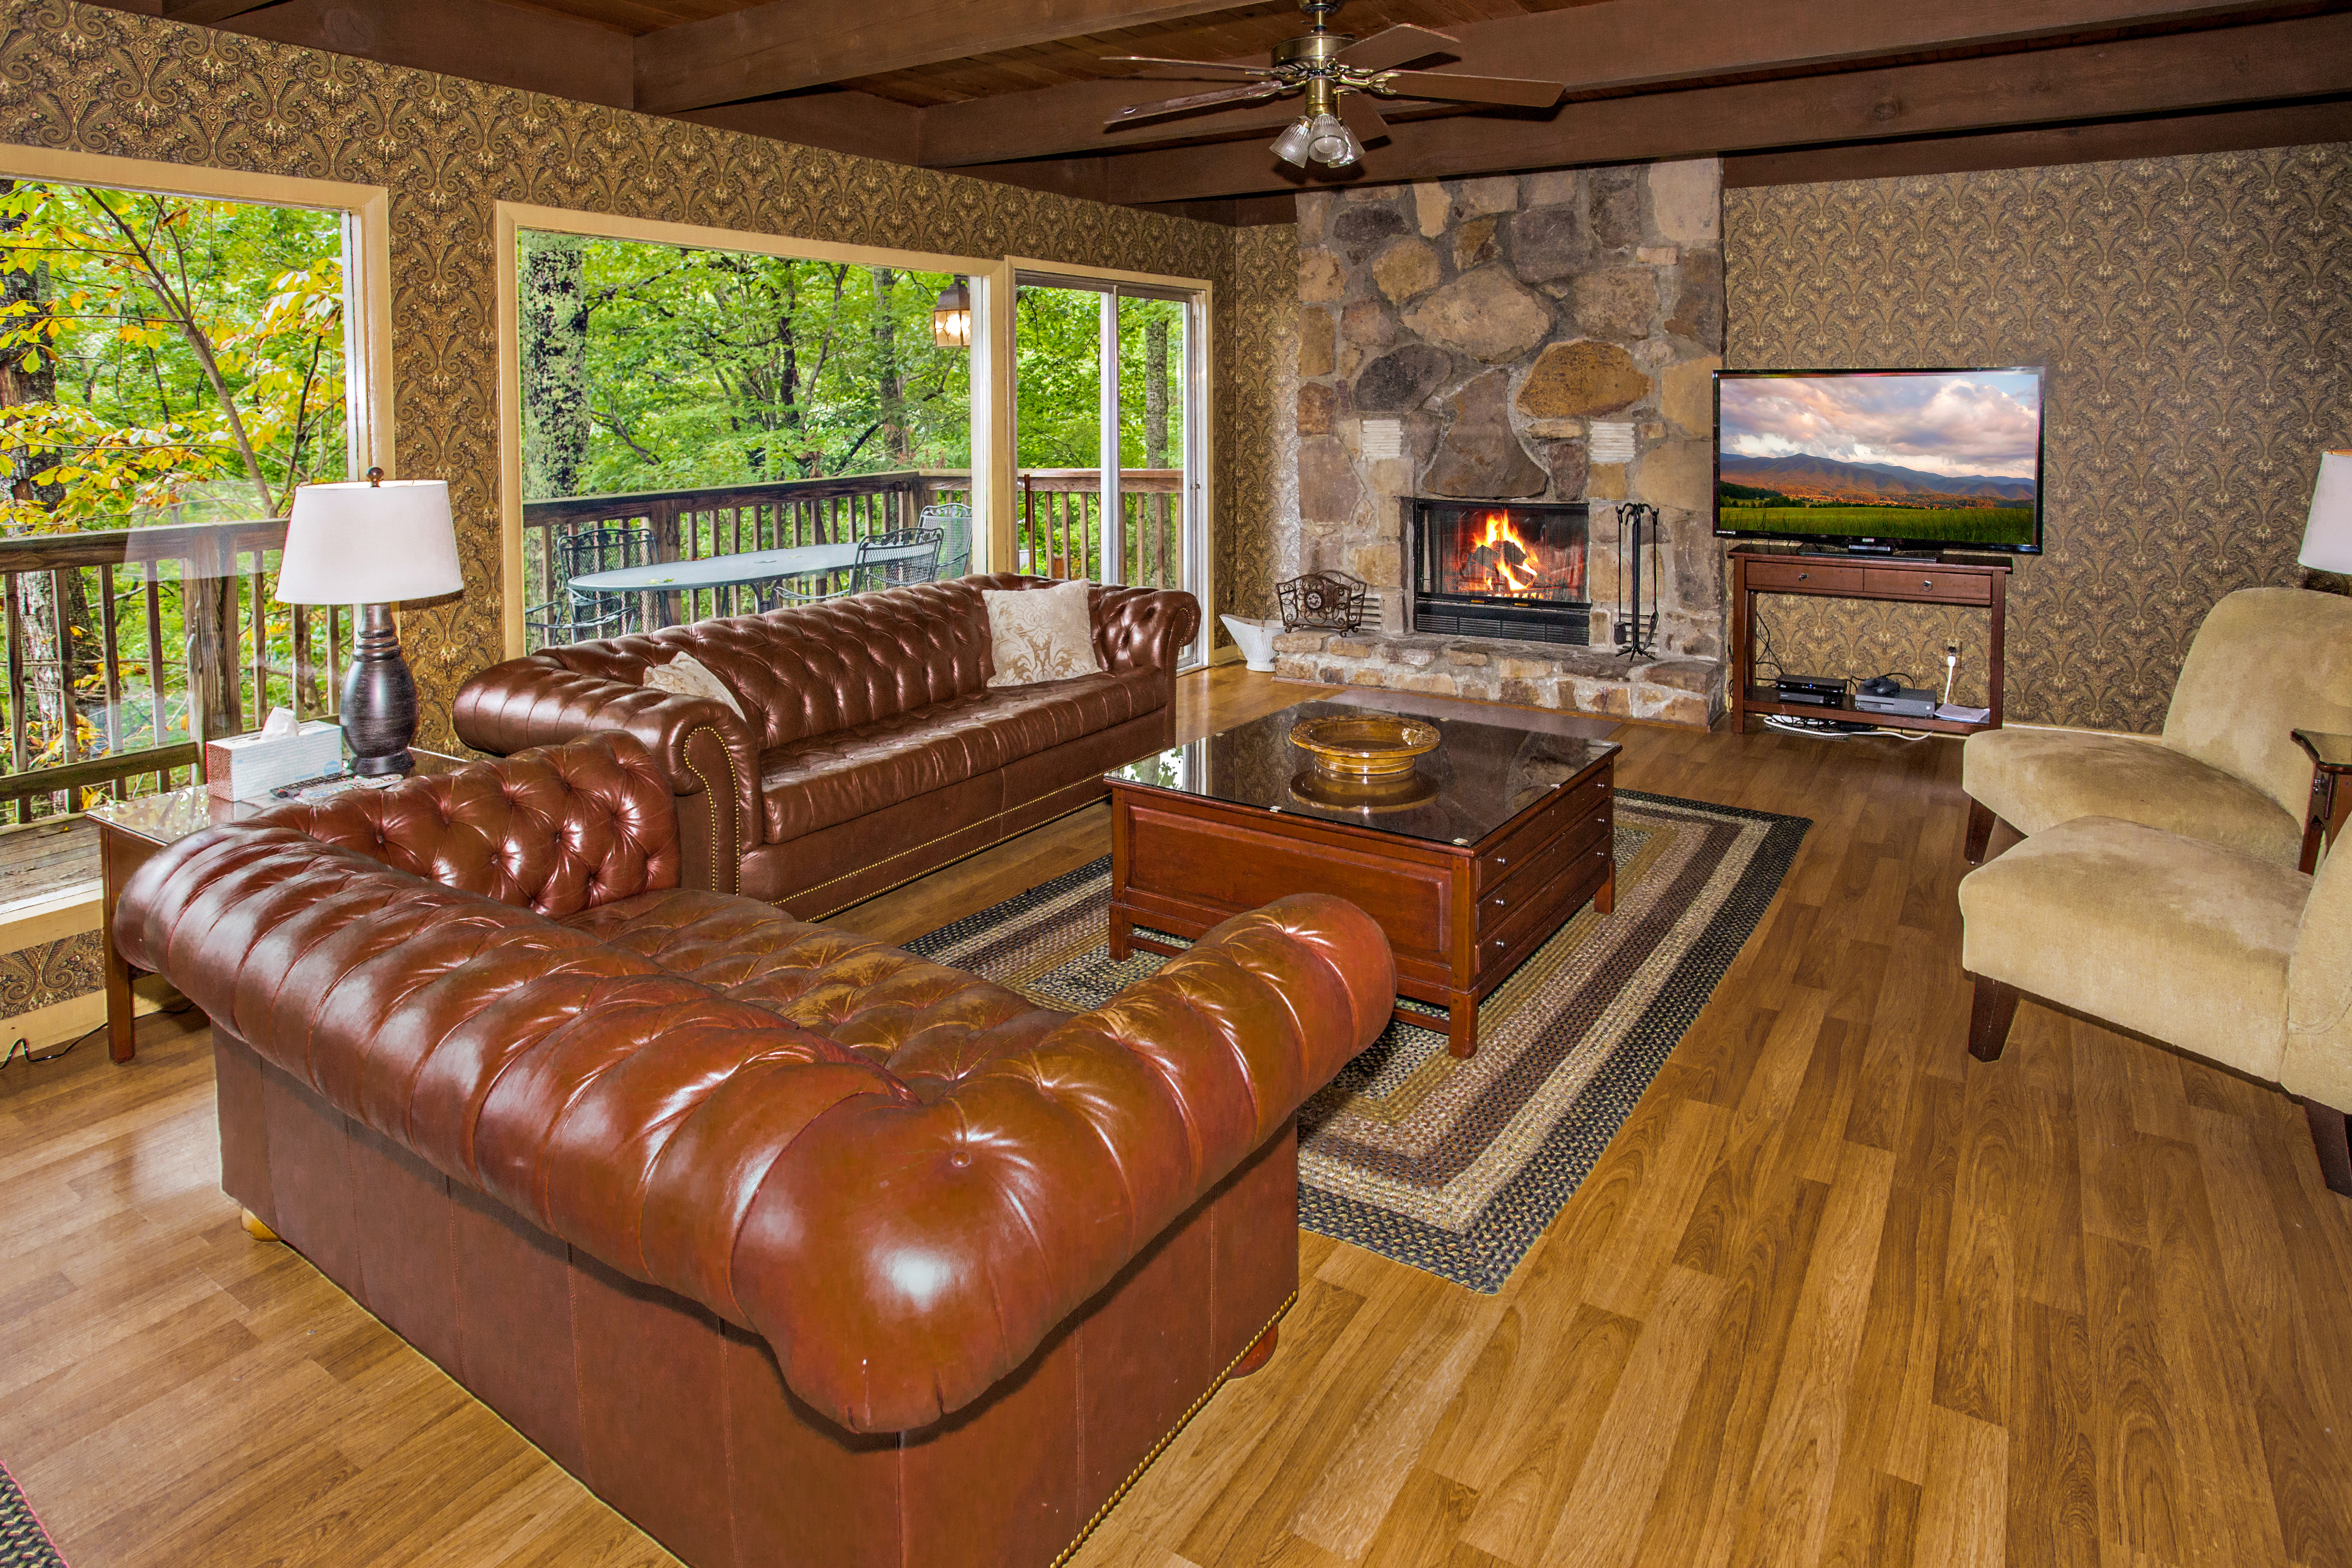 spatable for in pigeon have tn rent large cabins we six different forge clusters groups cabin affordable accommodating gatlinburg